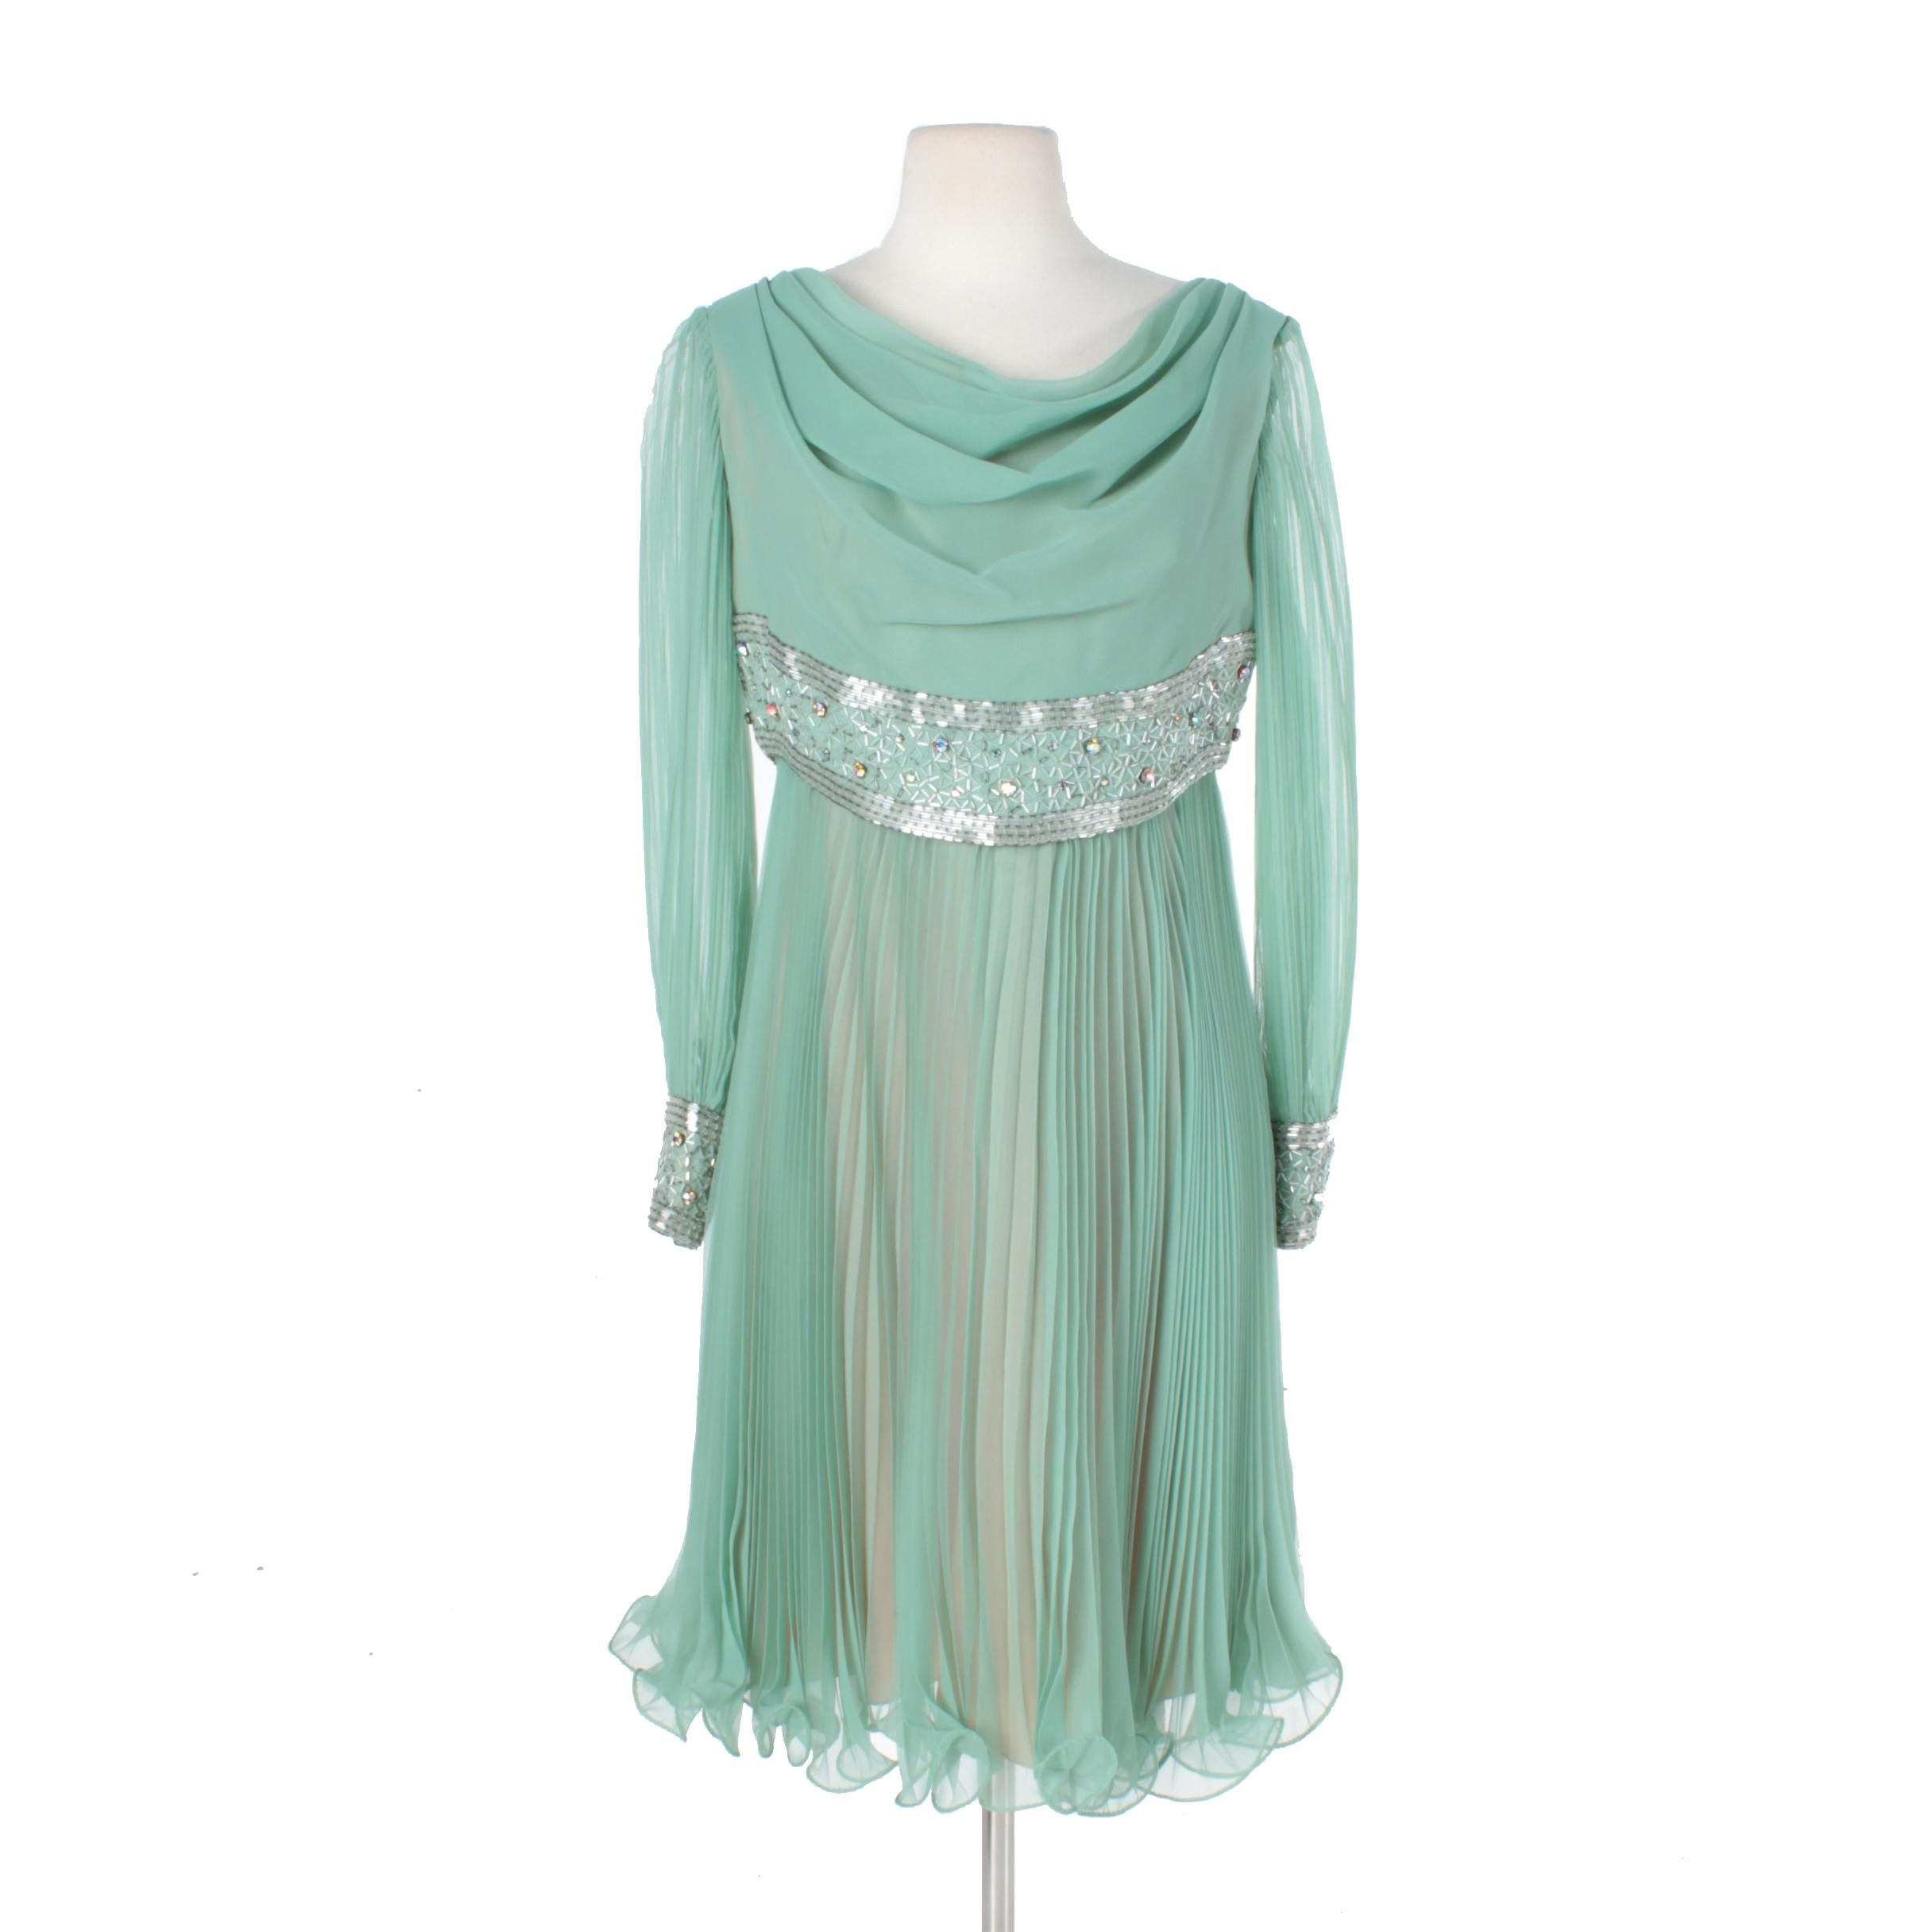 1960s Jack Bryan by Richard Du Puis Seafoam Green Rhinestone Cocktail Dress